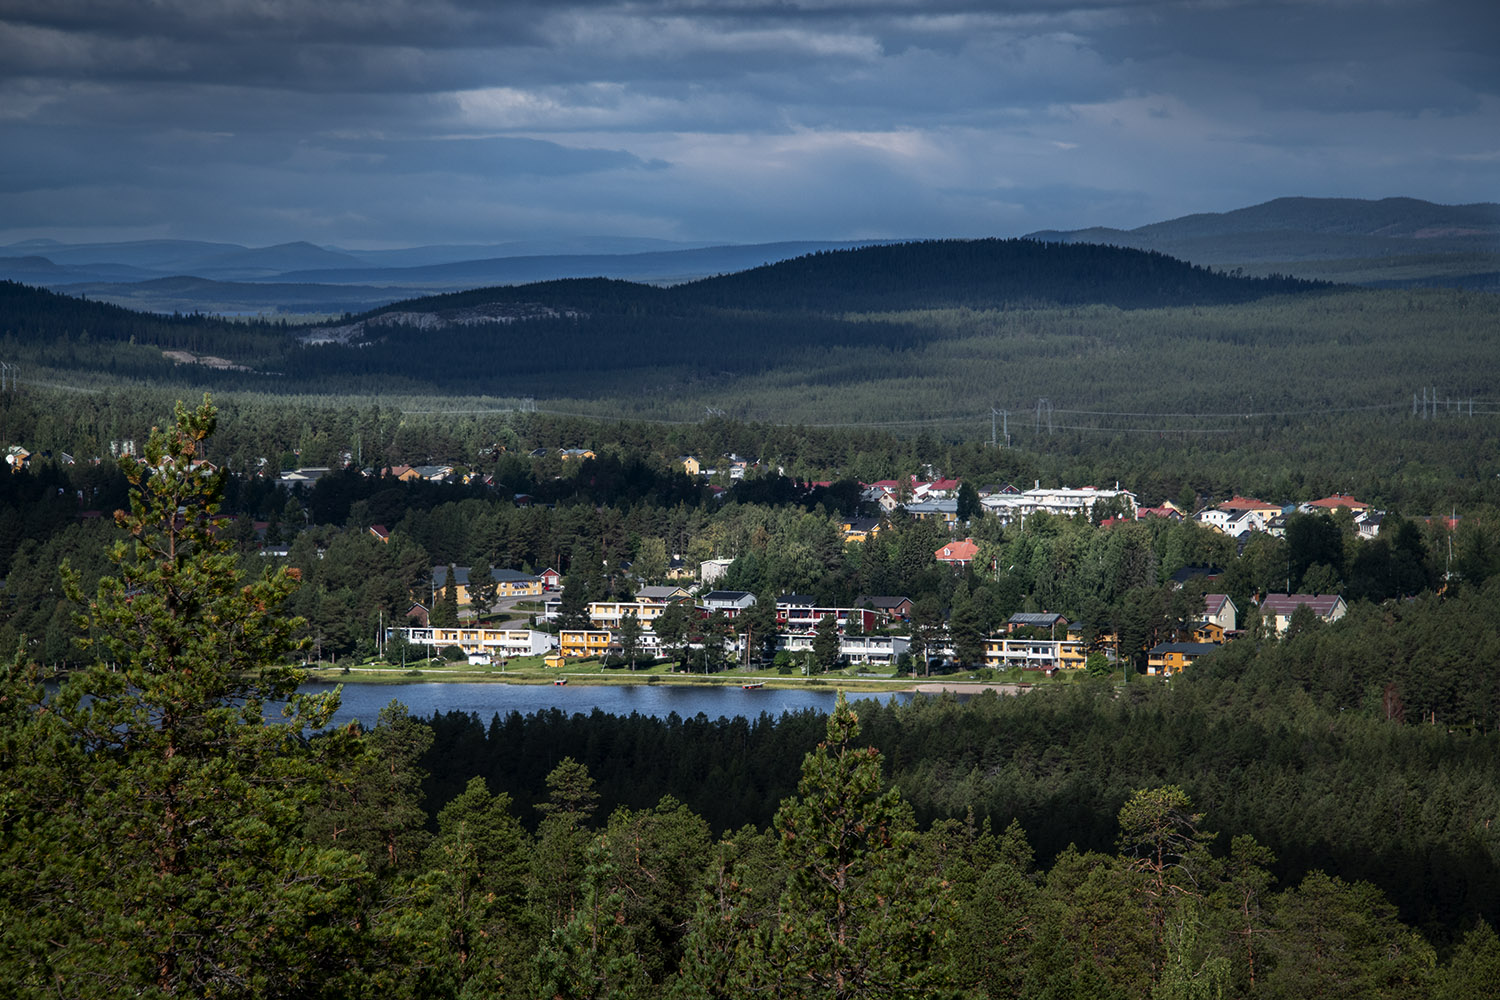 View over the Jokkmokk landscape with loots of pine trees, a lake, and a group of building.